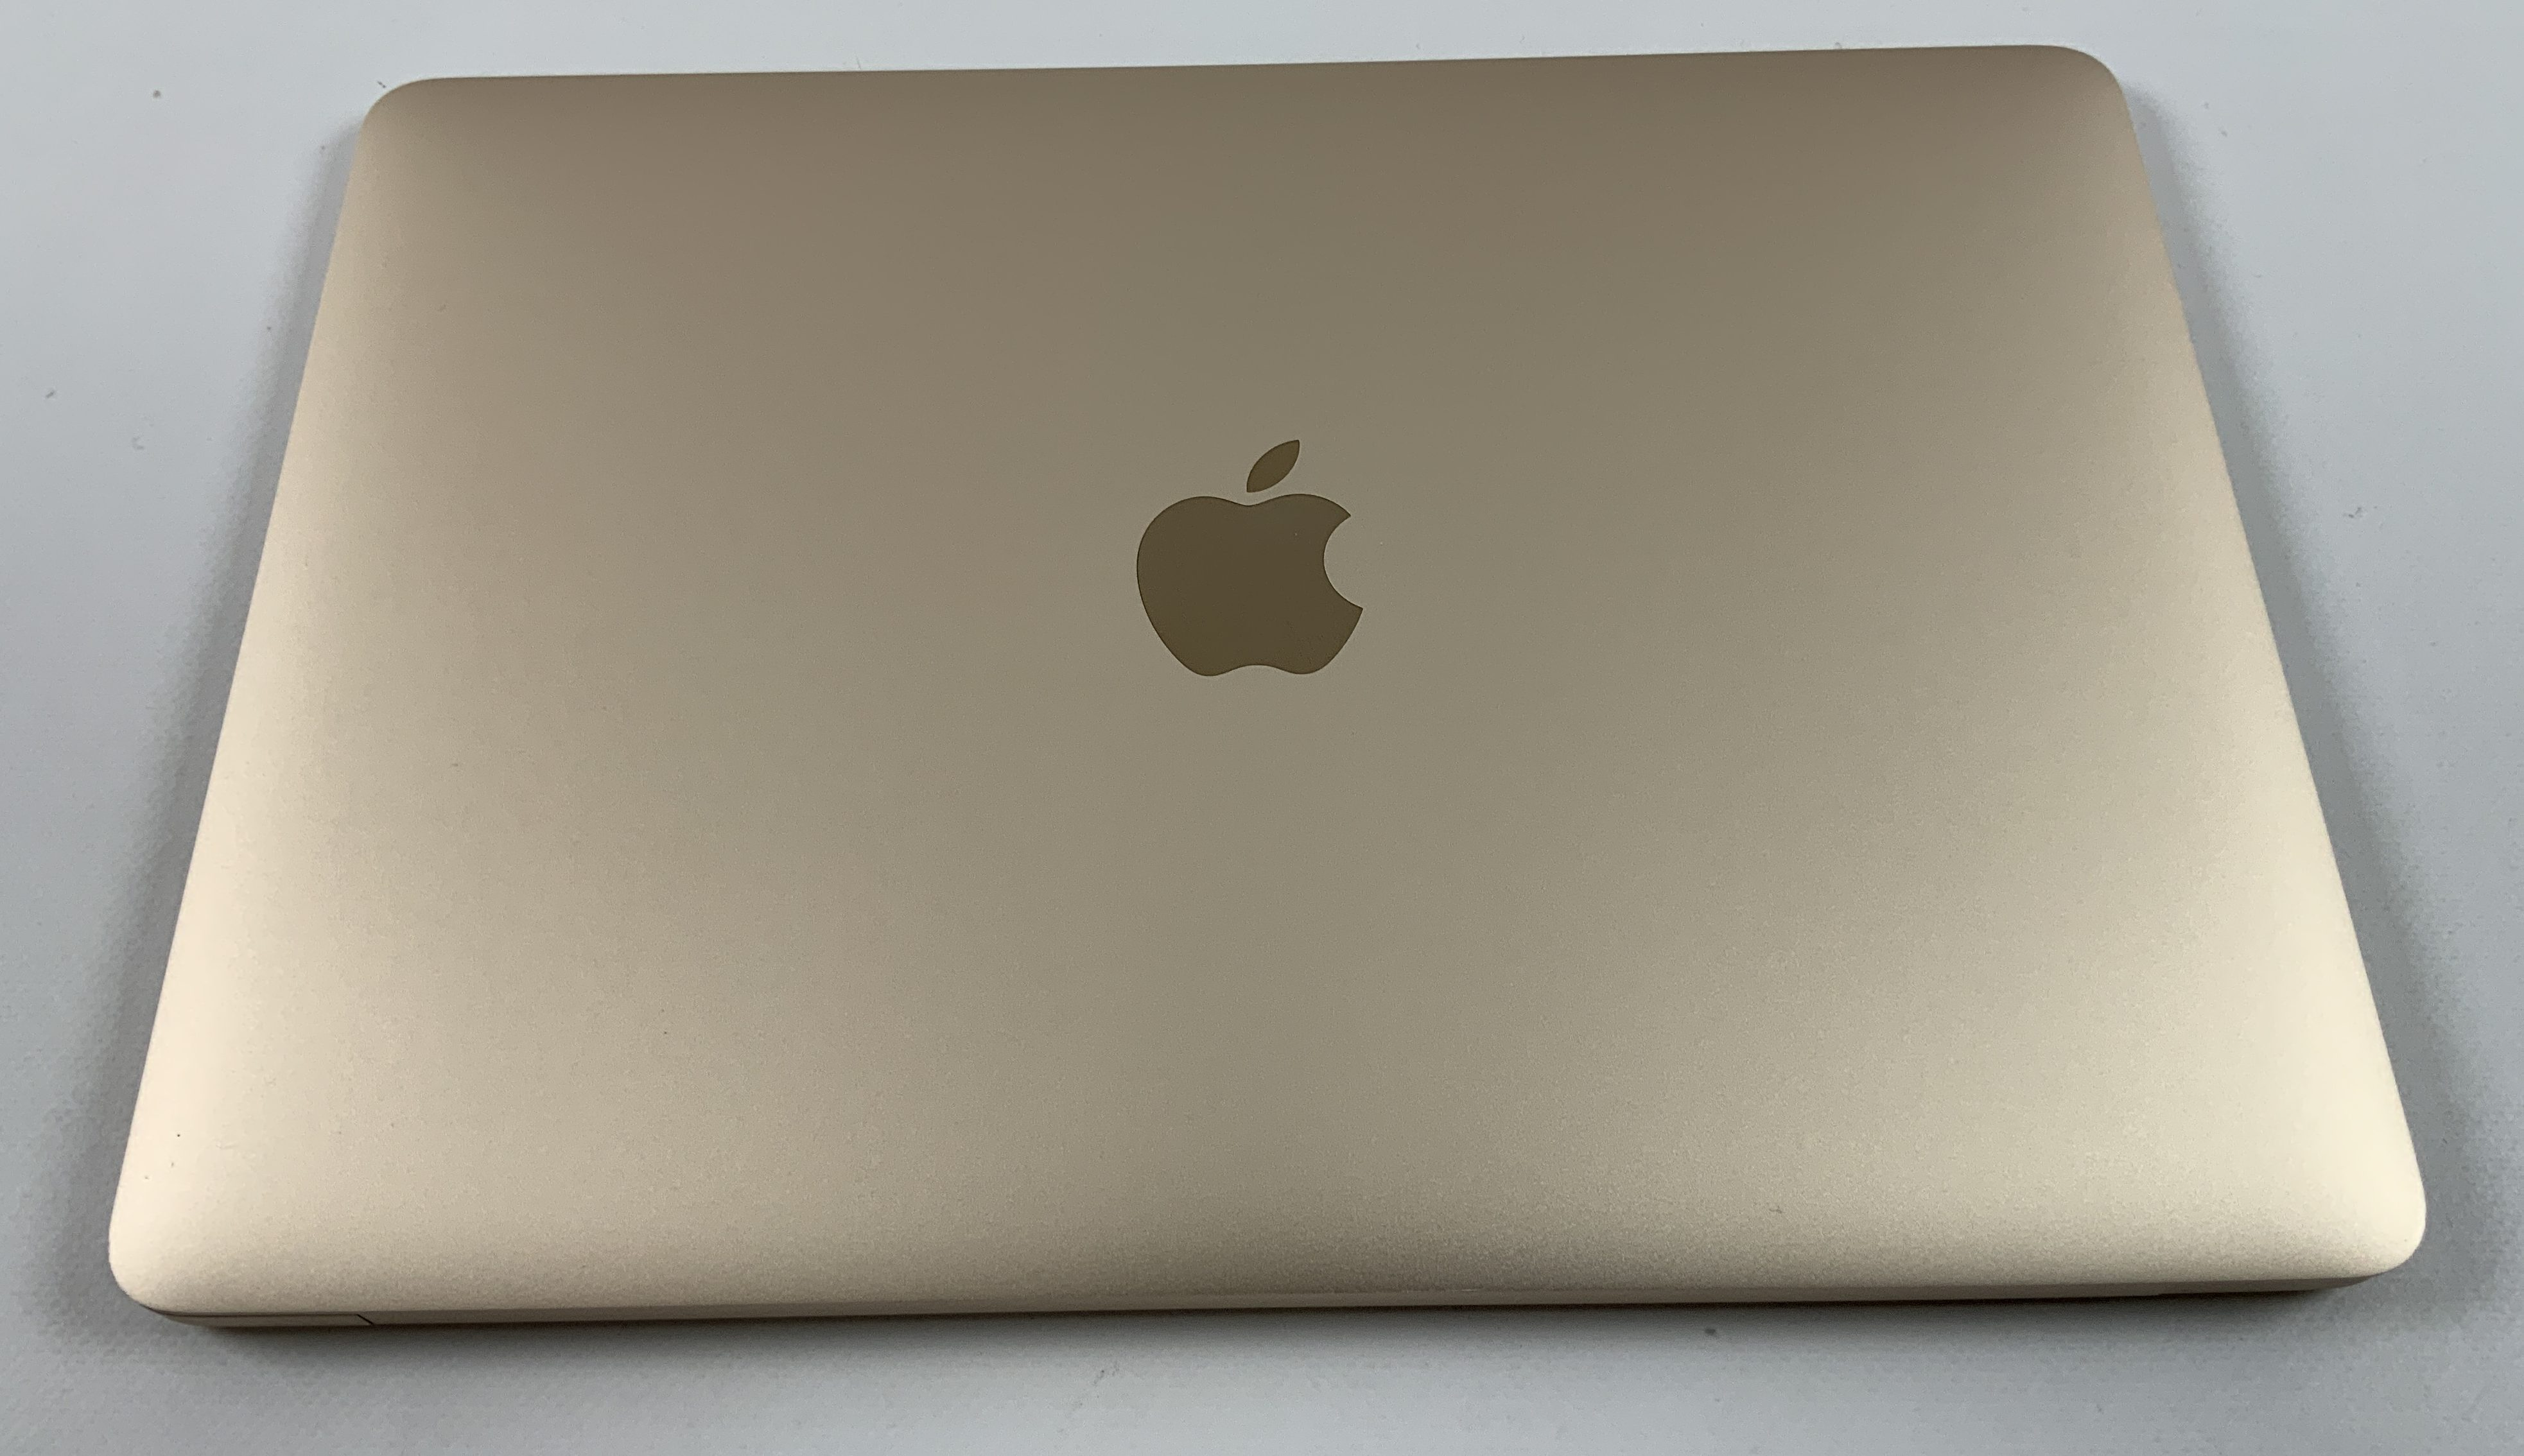 "MacBook 12"" Mid 2017 (Intel Core i7 1.4 GHz 16 GB RAM 256 GB SSD), Gold, Intel Core i7 1.4 GHz, 16 GB RAM, 256 GB SSD, Kuva 2"